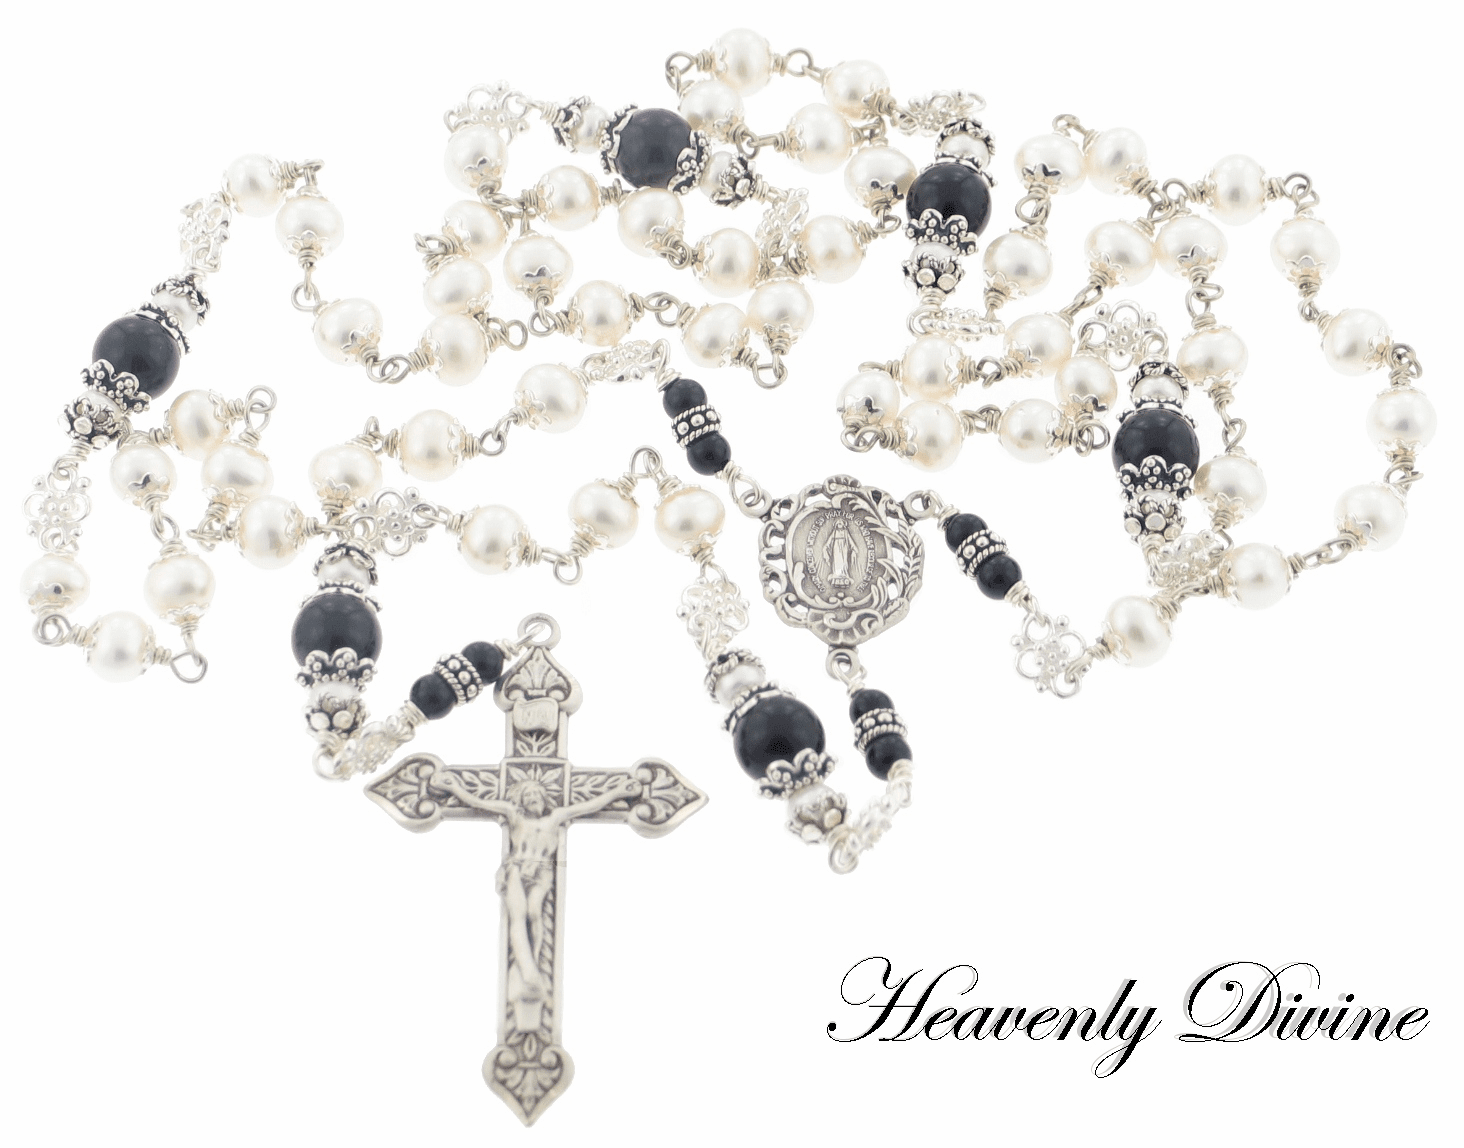 Heavenly Divine Pearl Rosaries